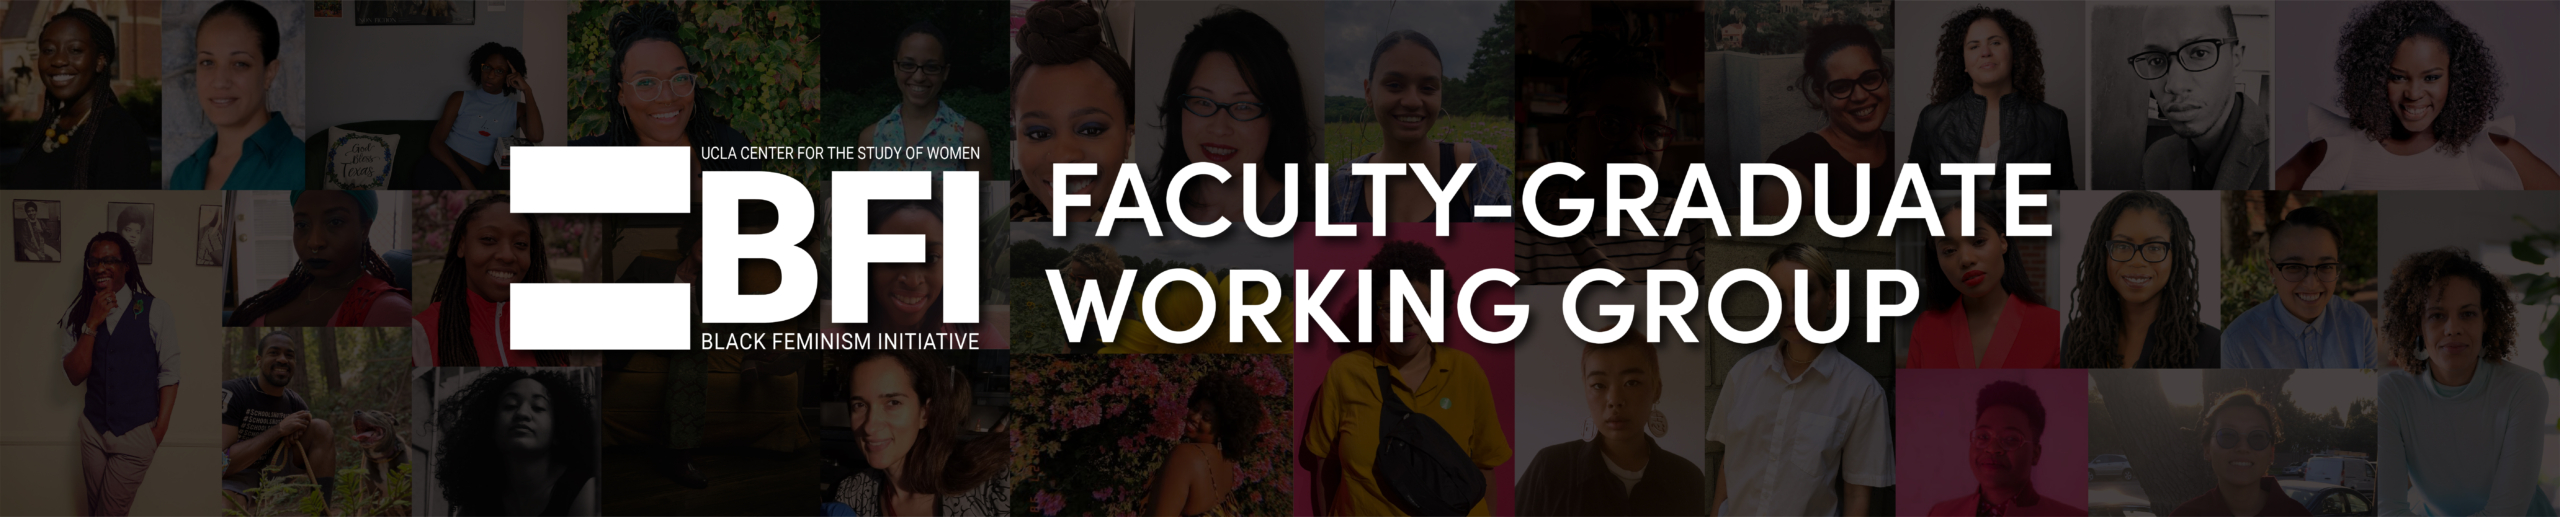 BFI Faculty-Graduate Working Group